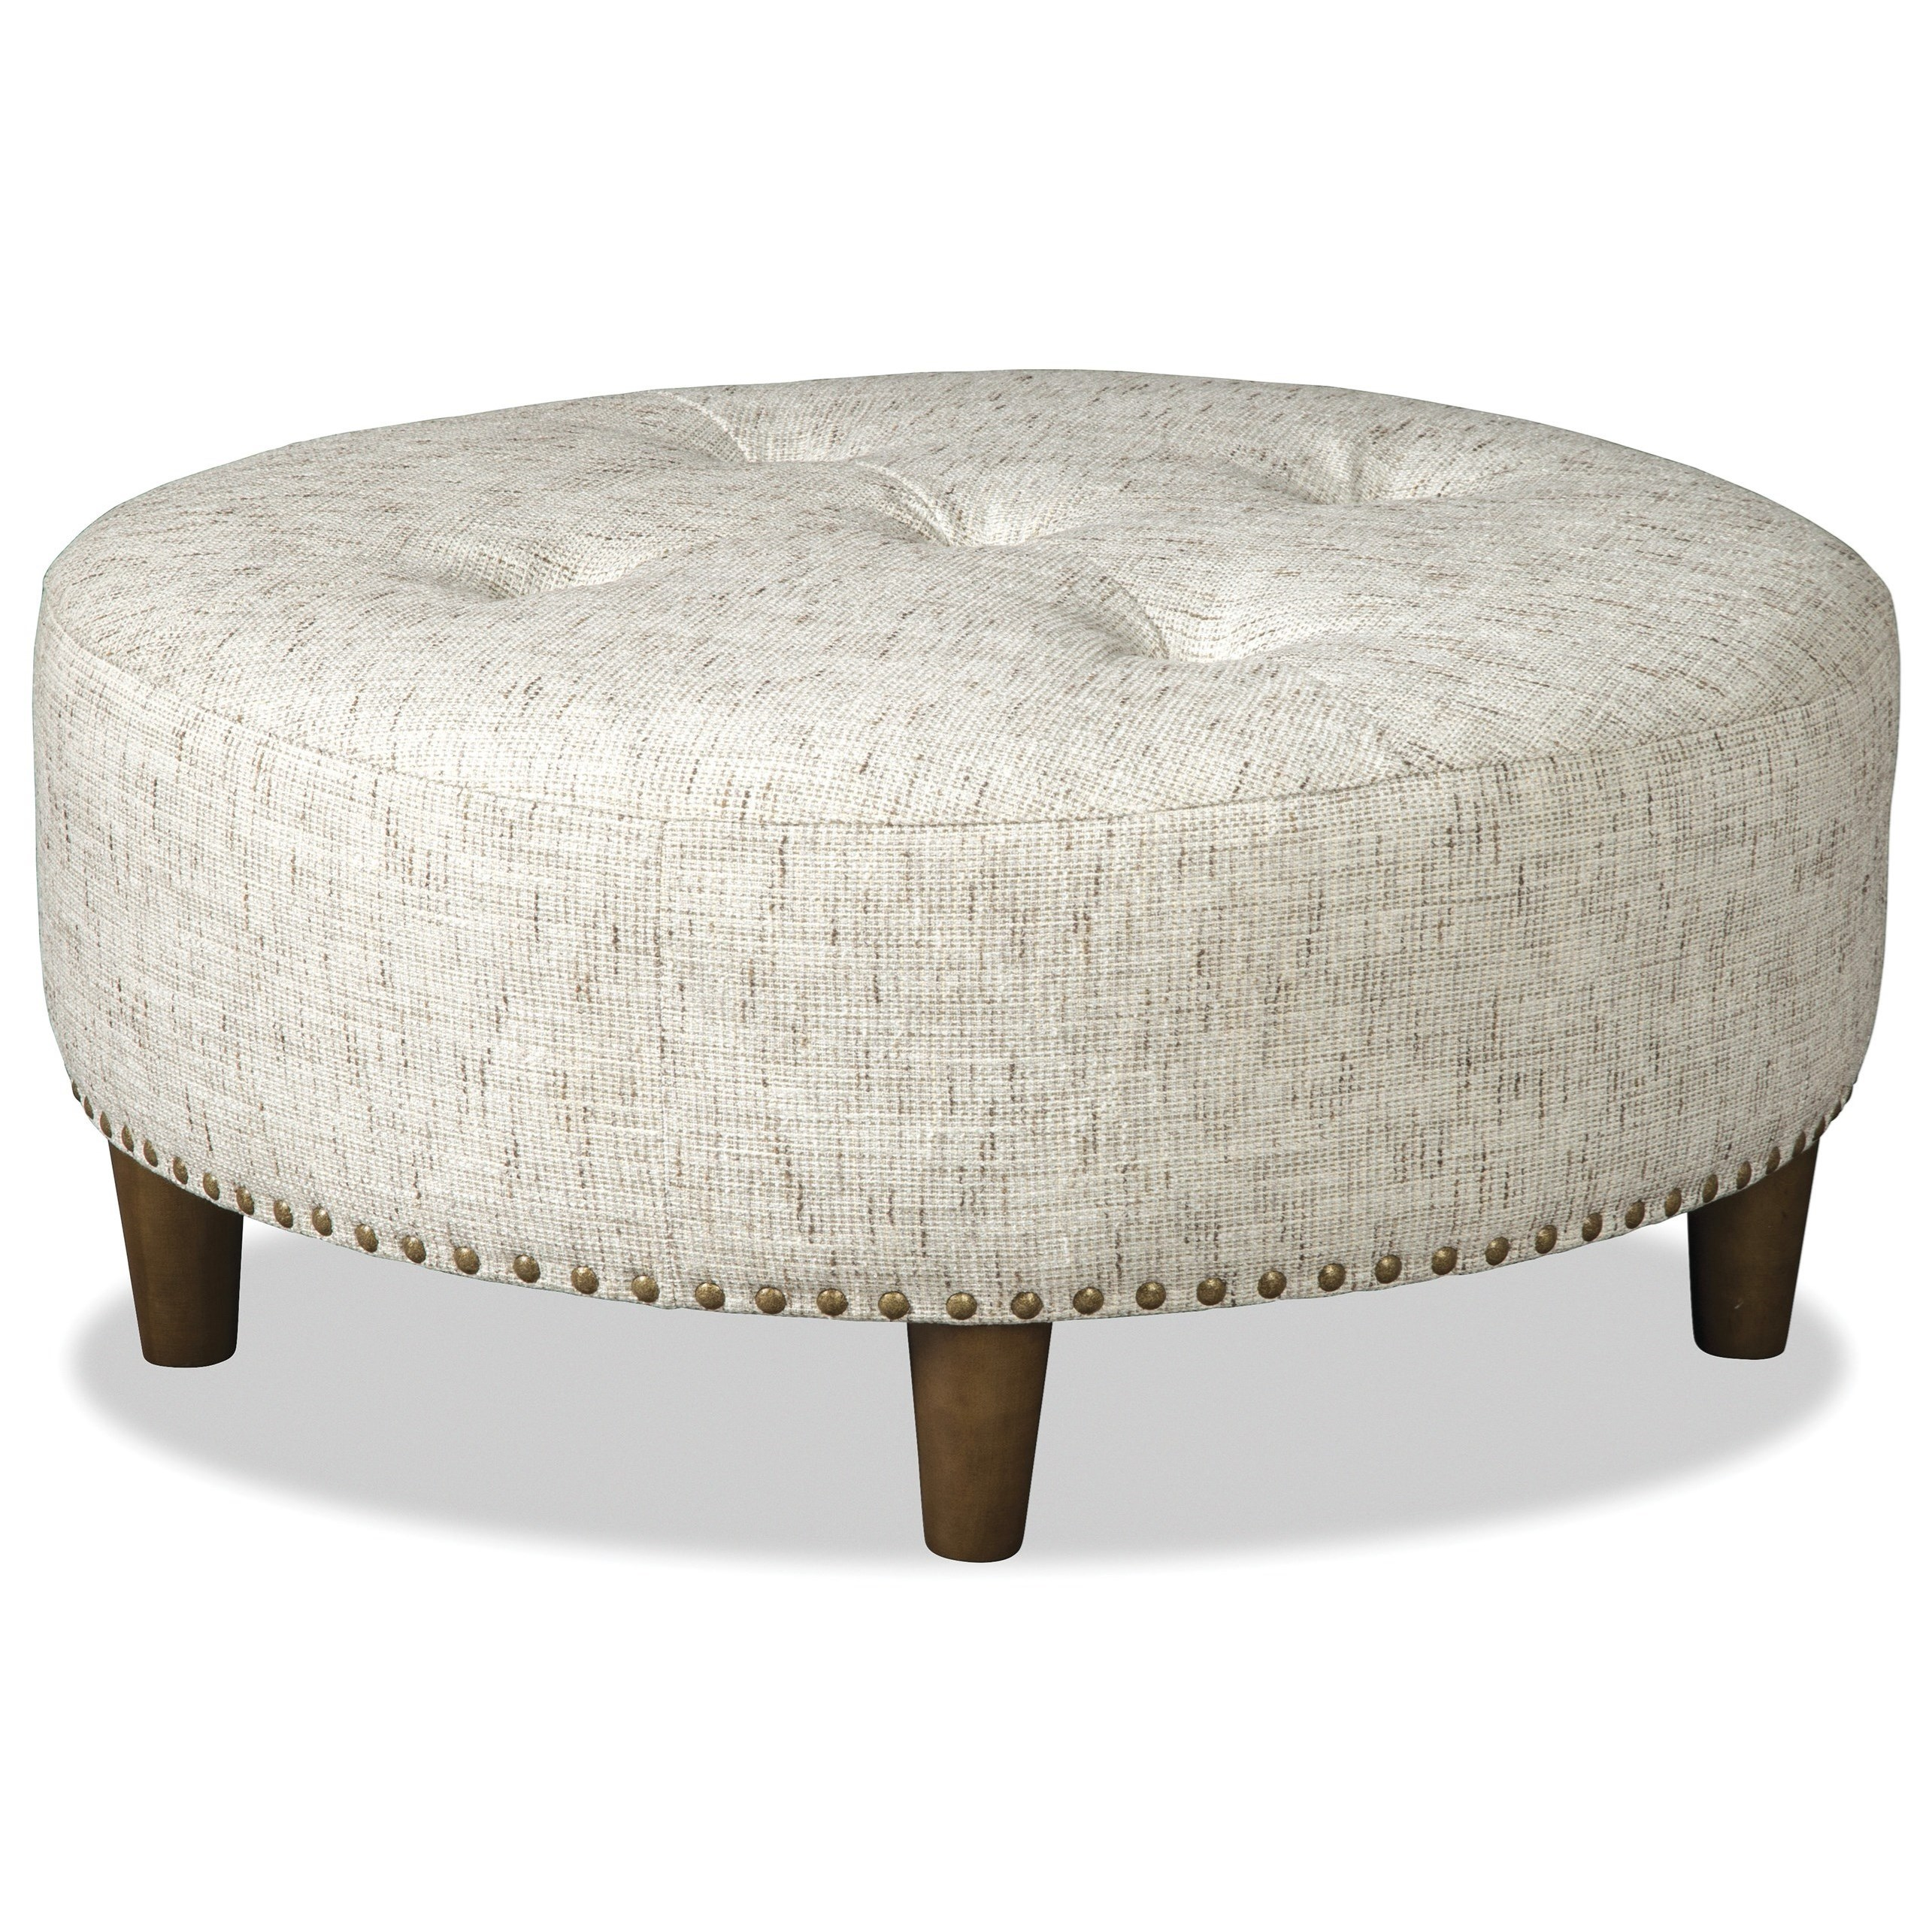 090200 Cocktail Ottoman by Craftmaster at Belfort Furniture